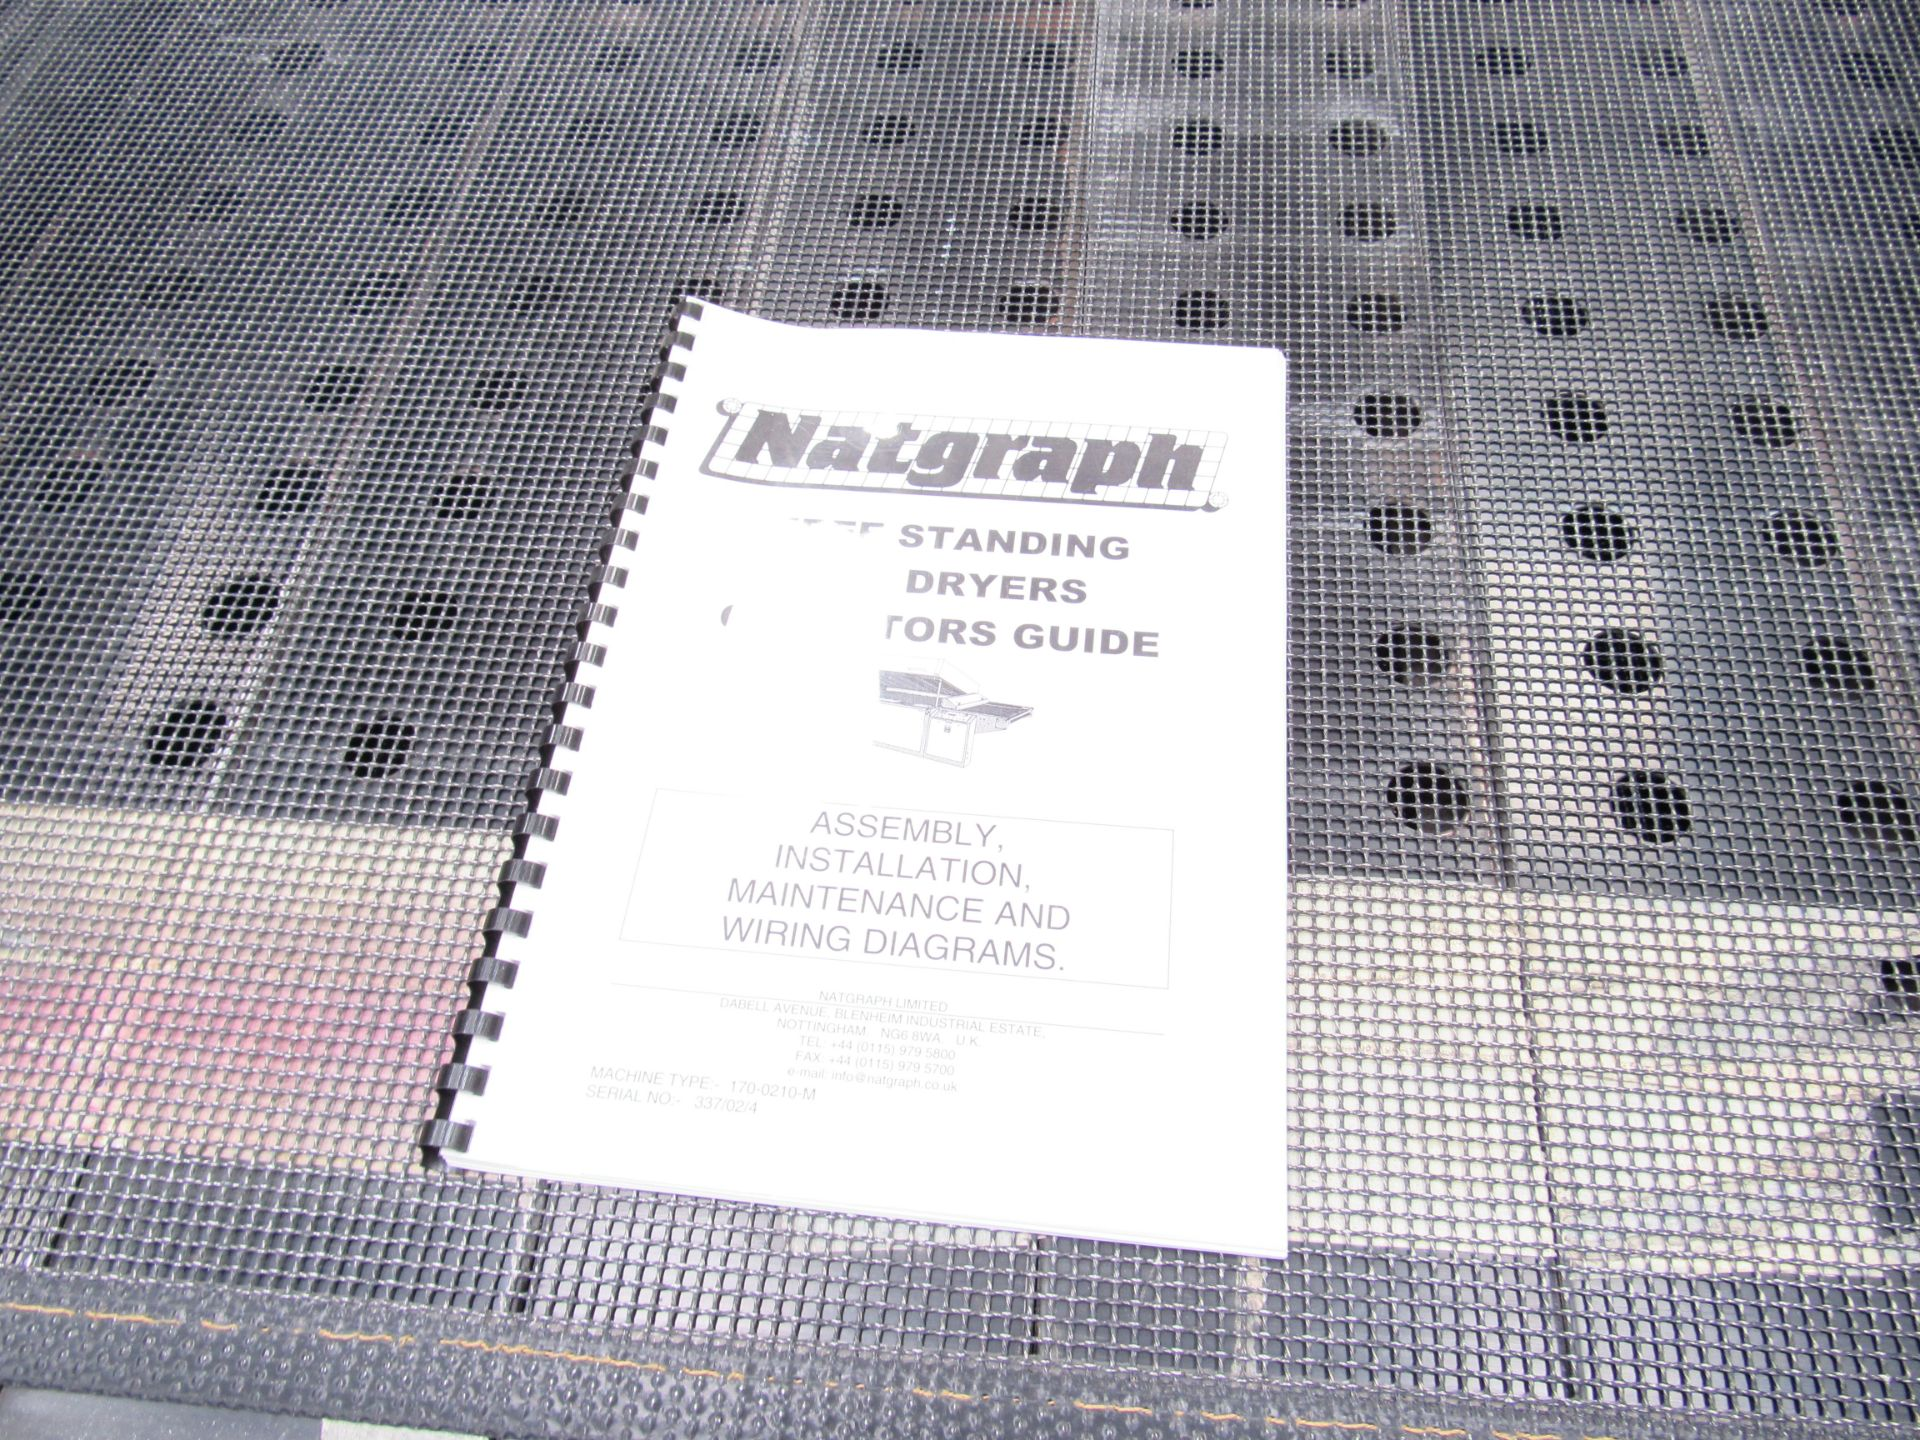 Serfast Screen Printer with Natgraph 170-02.01 UV Dryer, Serial Number 337-02-04, 2002 - Image 10 of 13